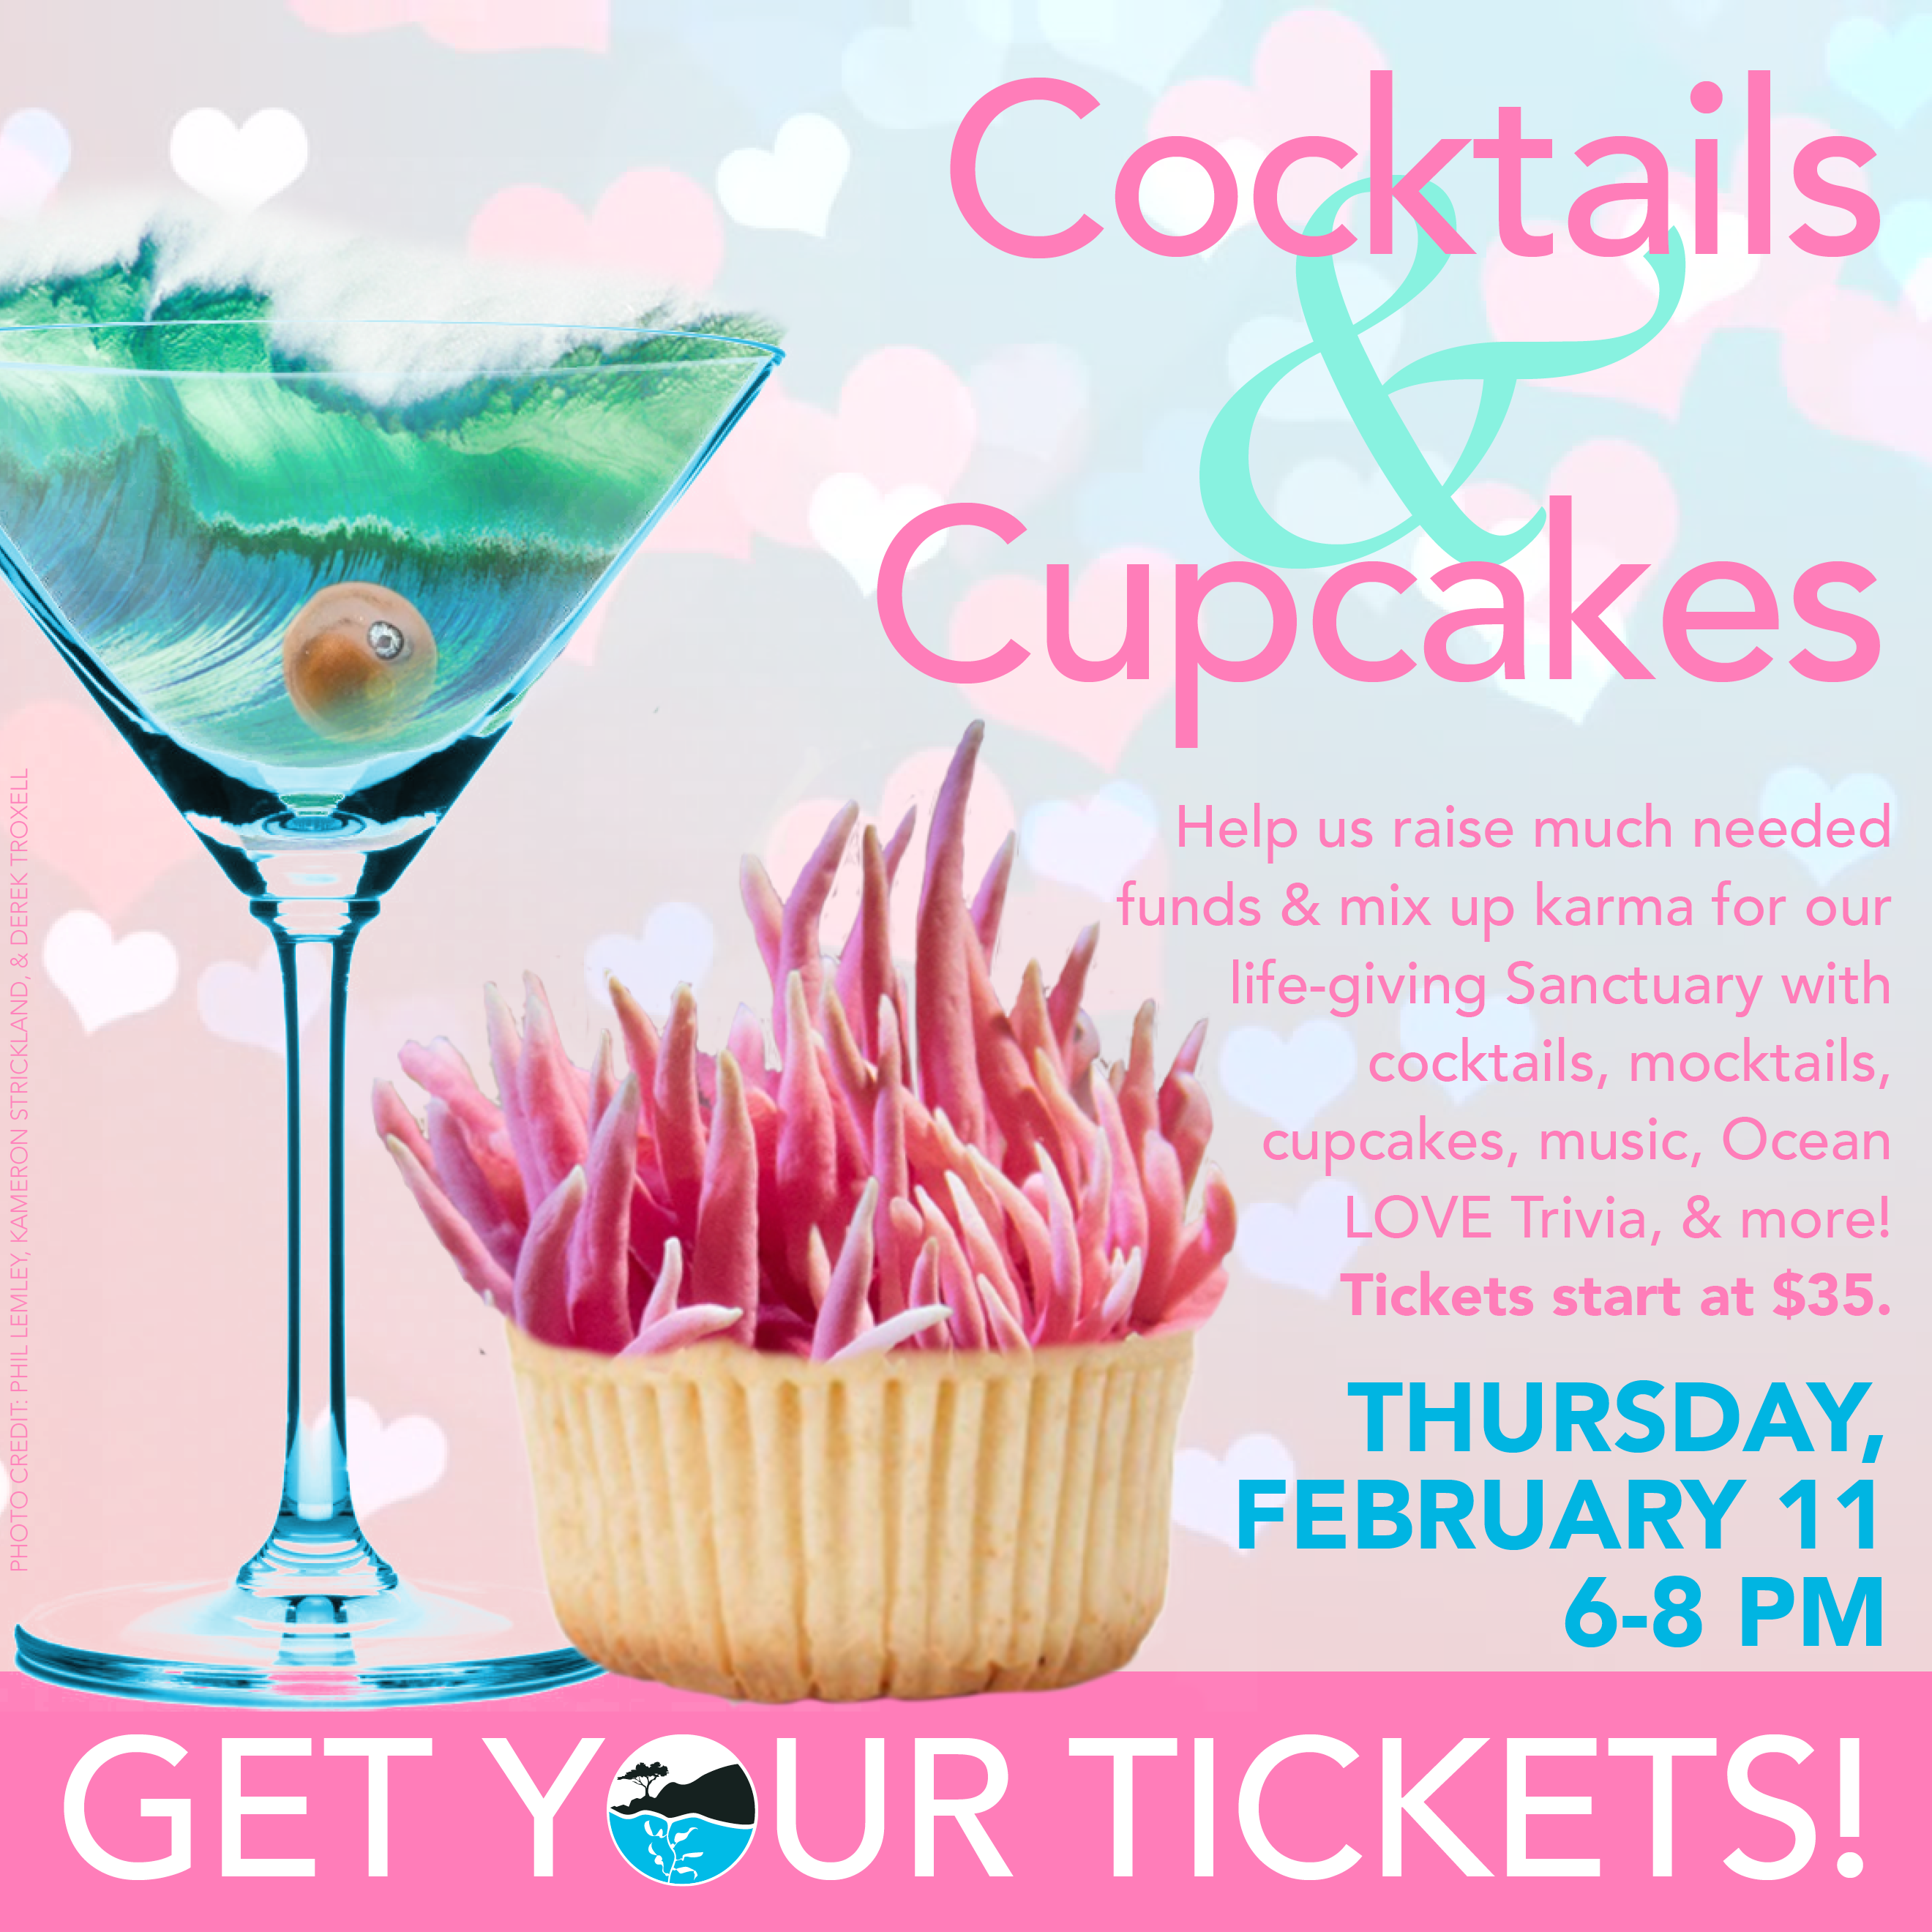 Get your Cocktails & Cupcakes fundraiser tickets!